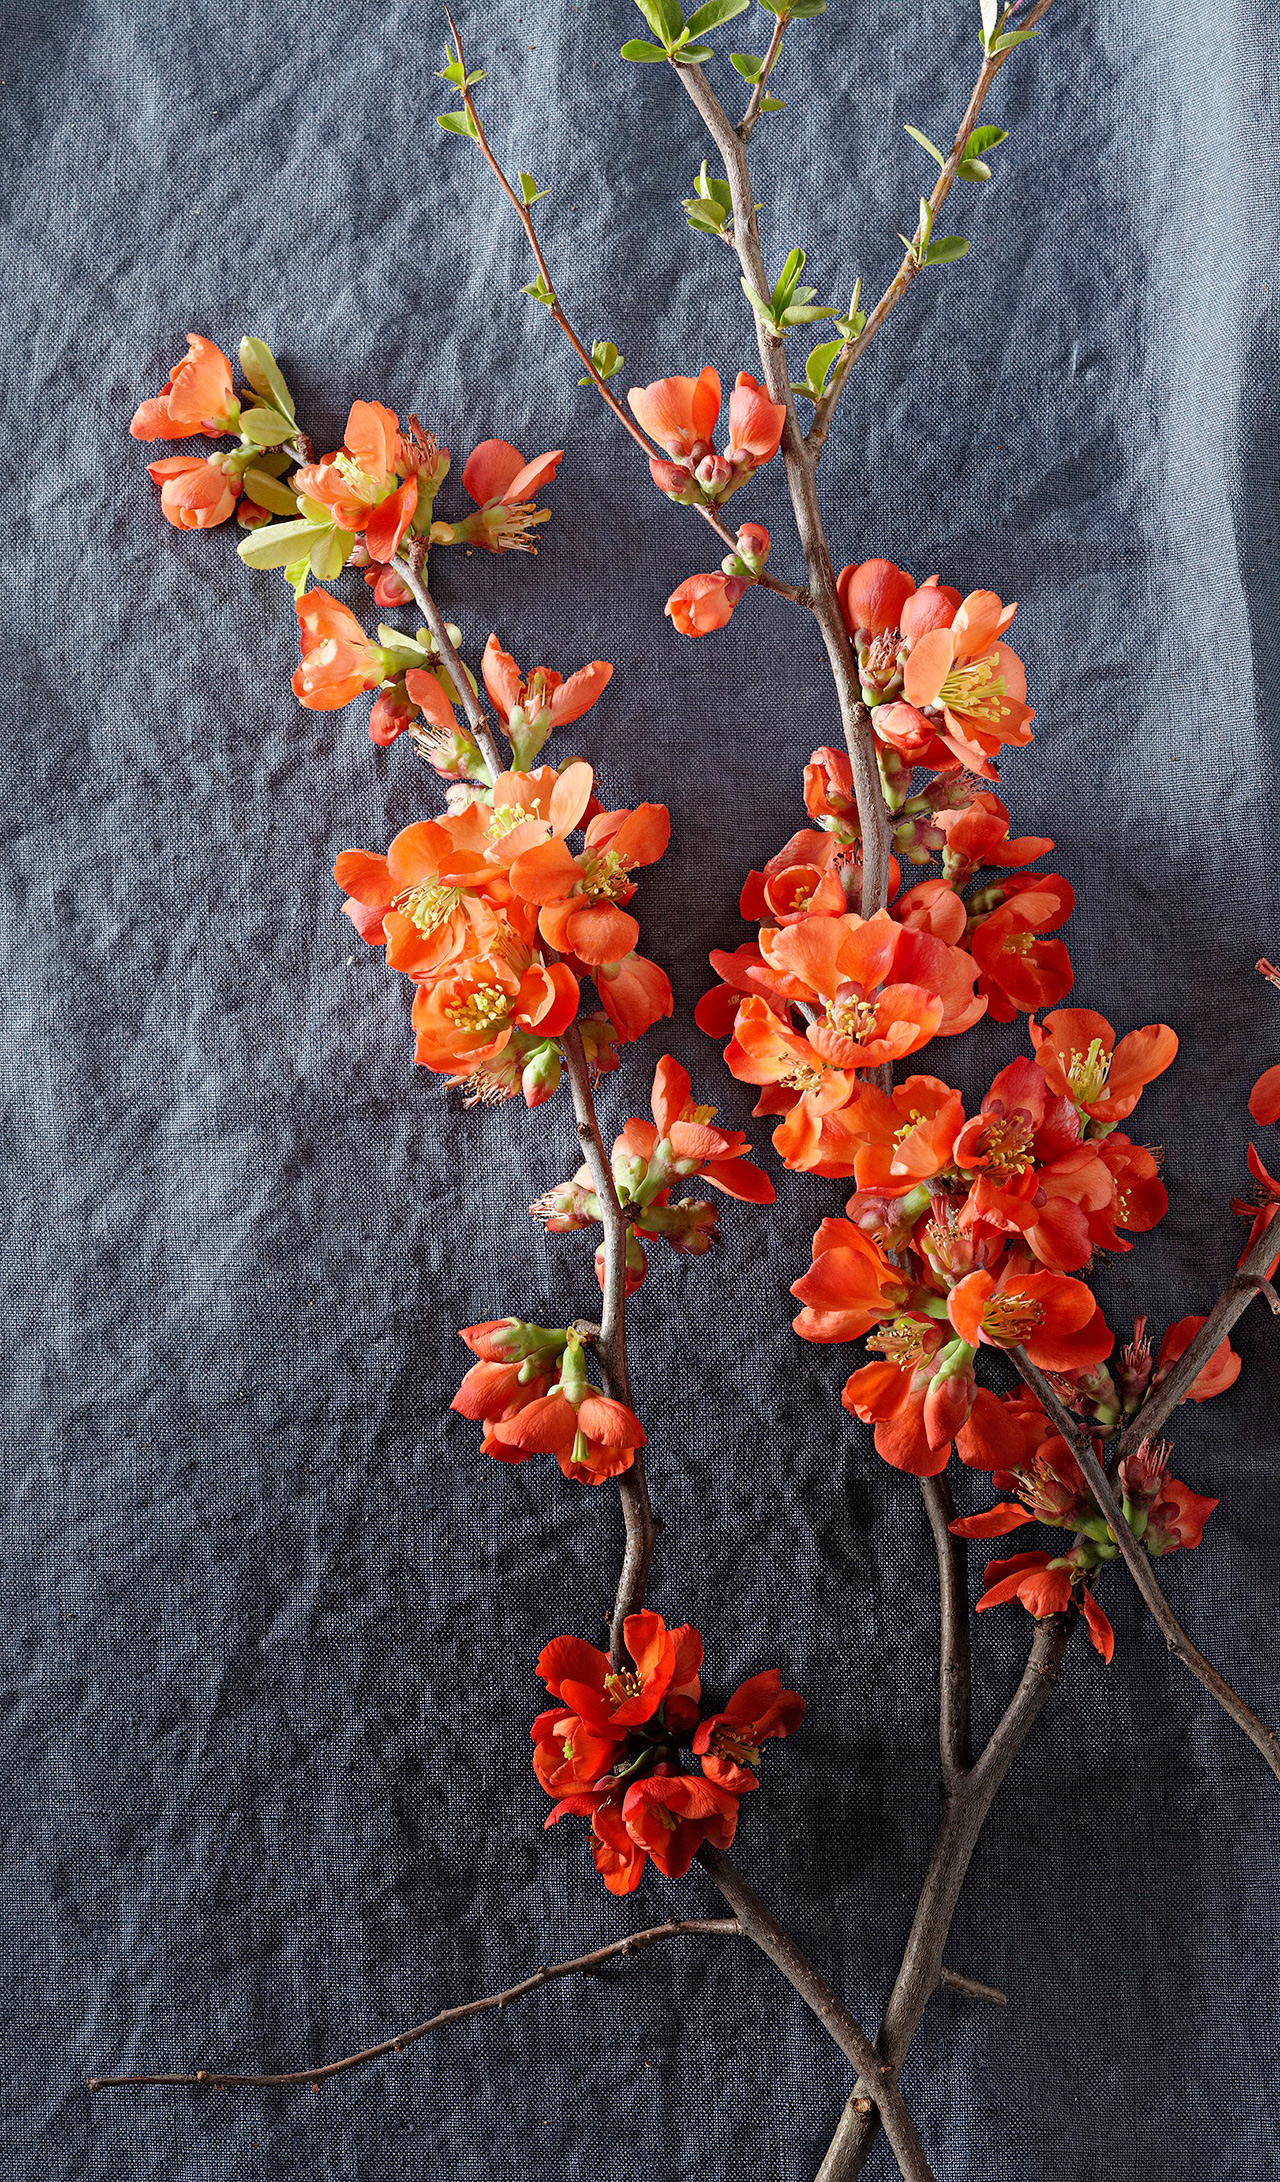 two flowering branches of orange quince